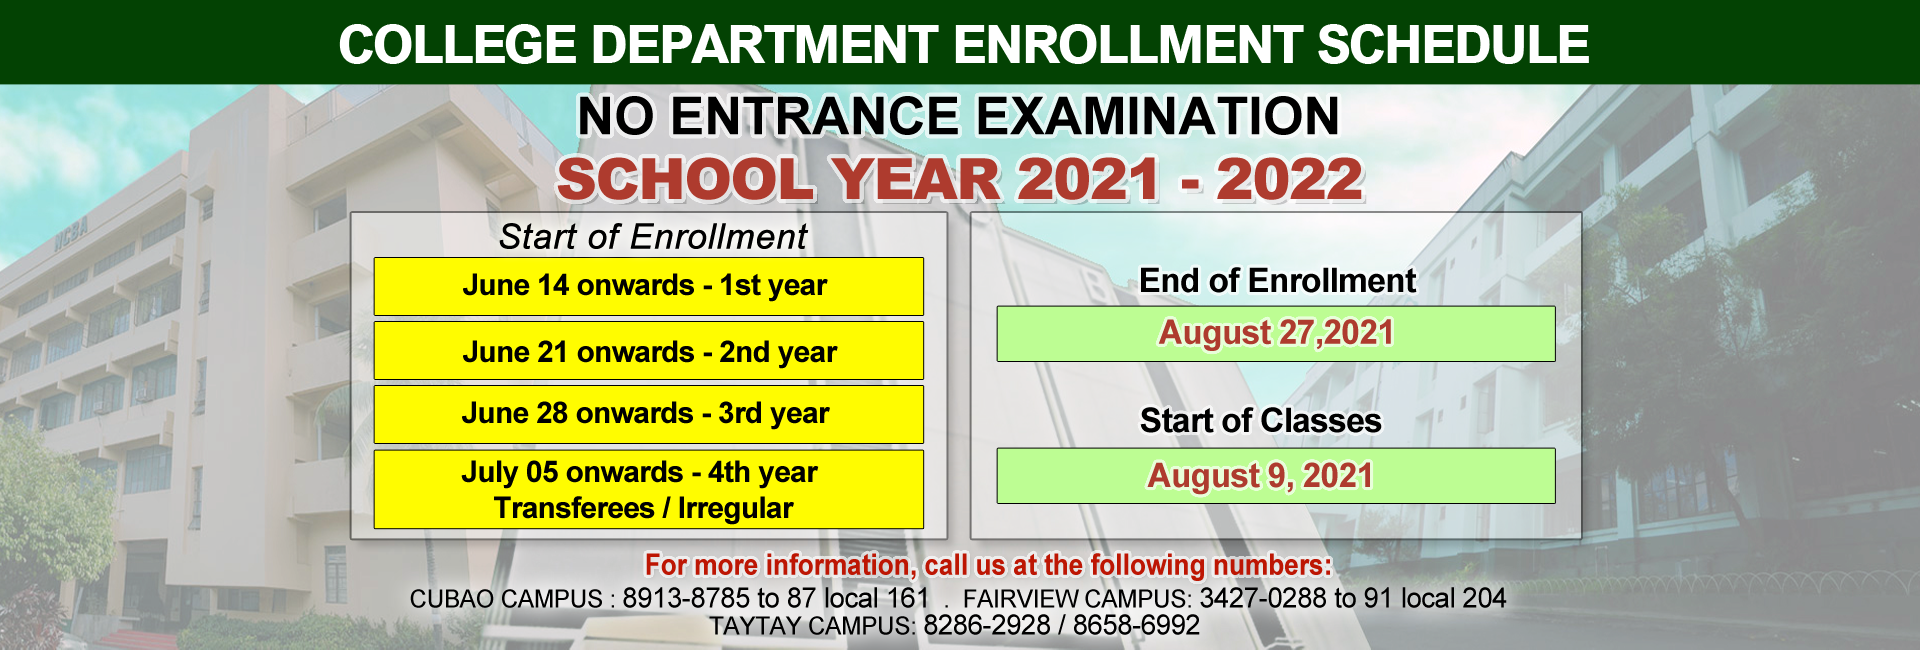 NCBA College Enrollment Schedules for SY 2021-2022